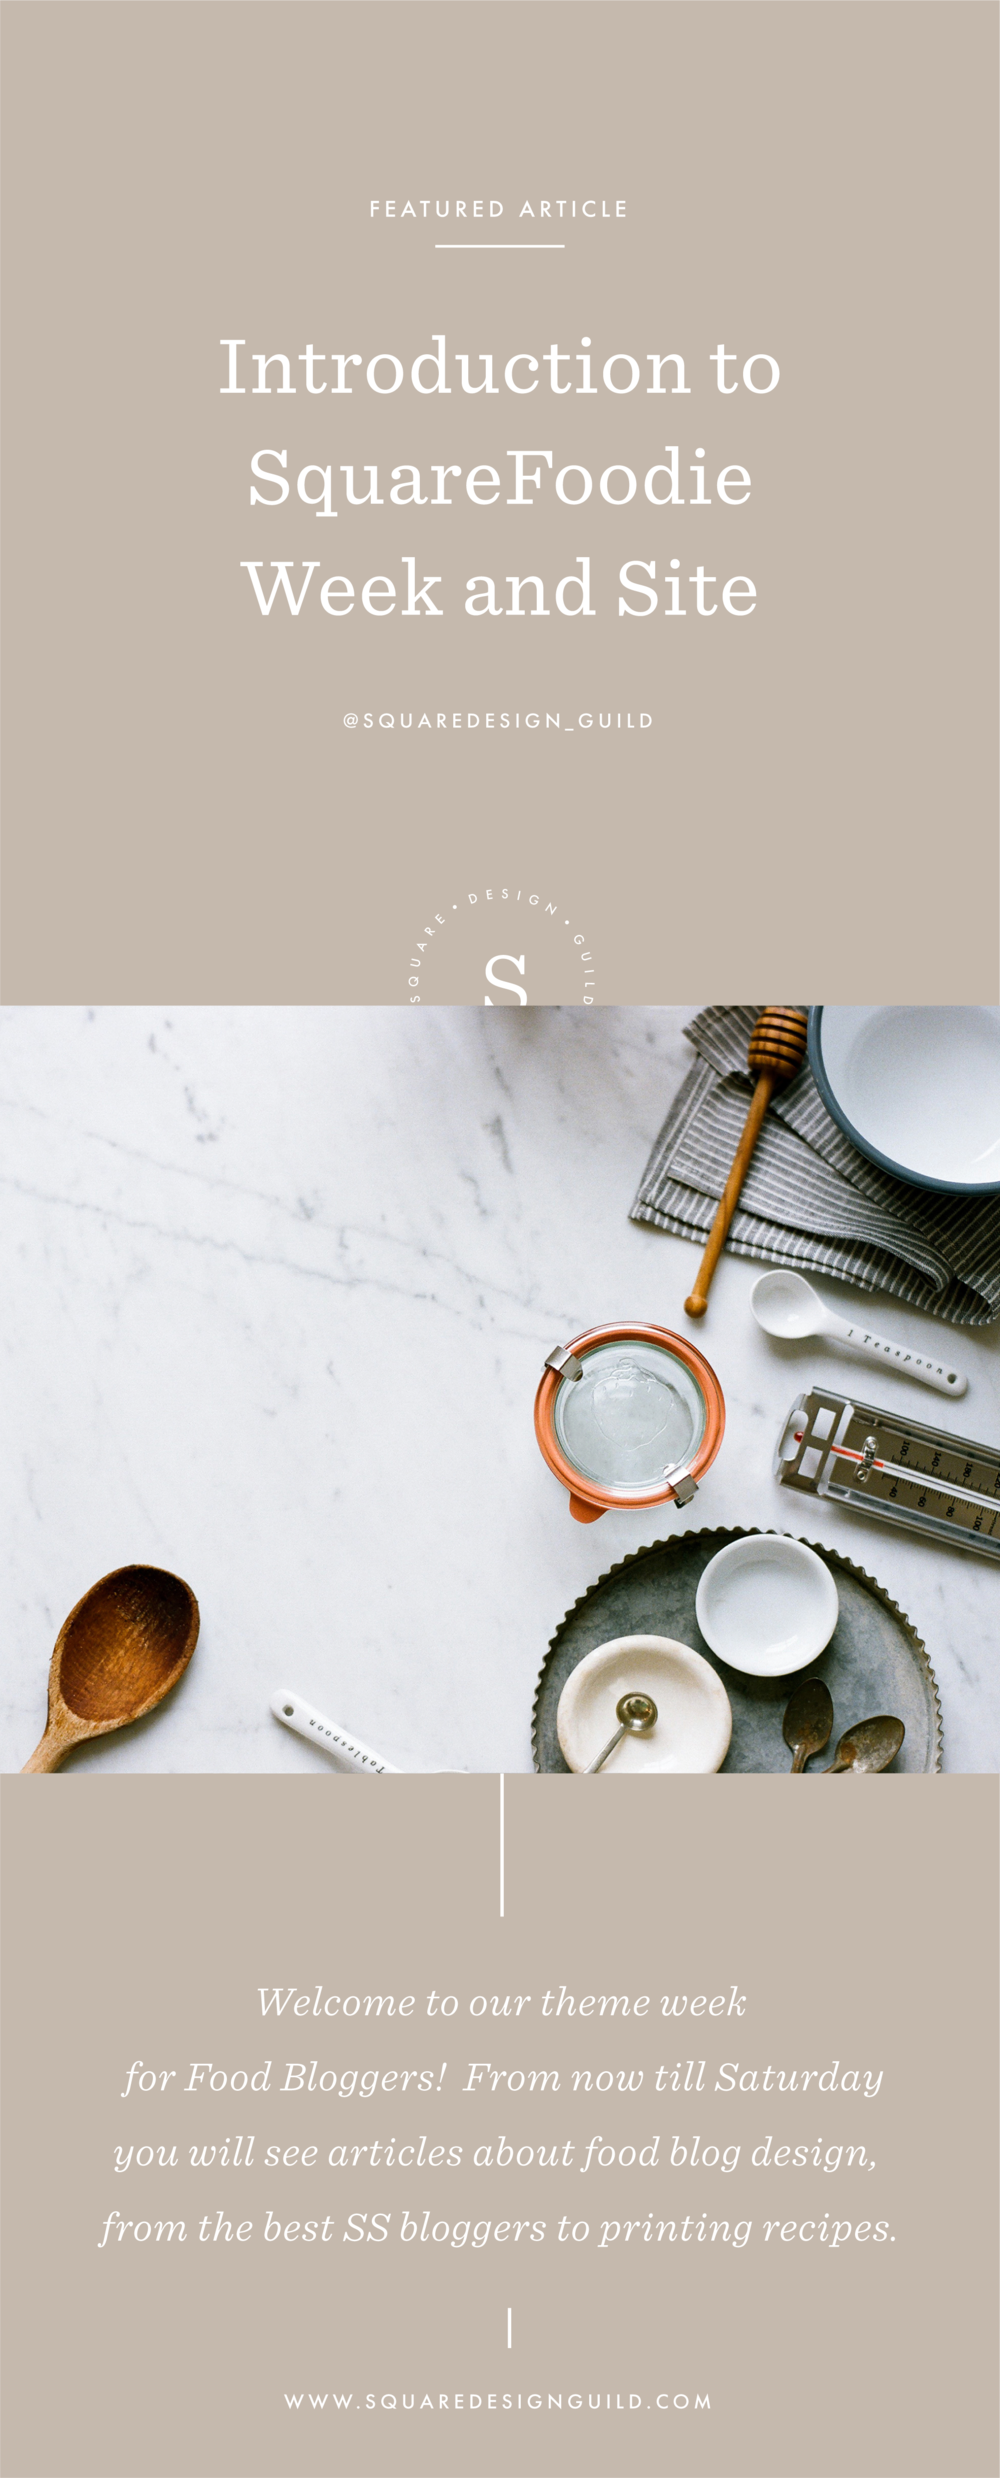 Food Blogging on Squarespace